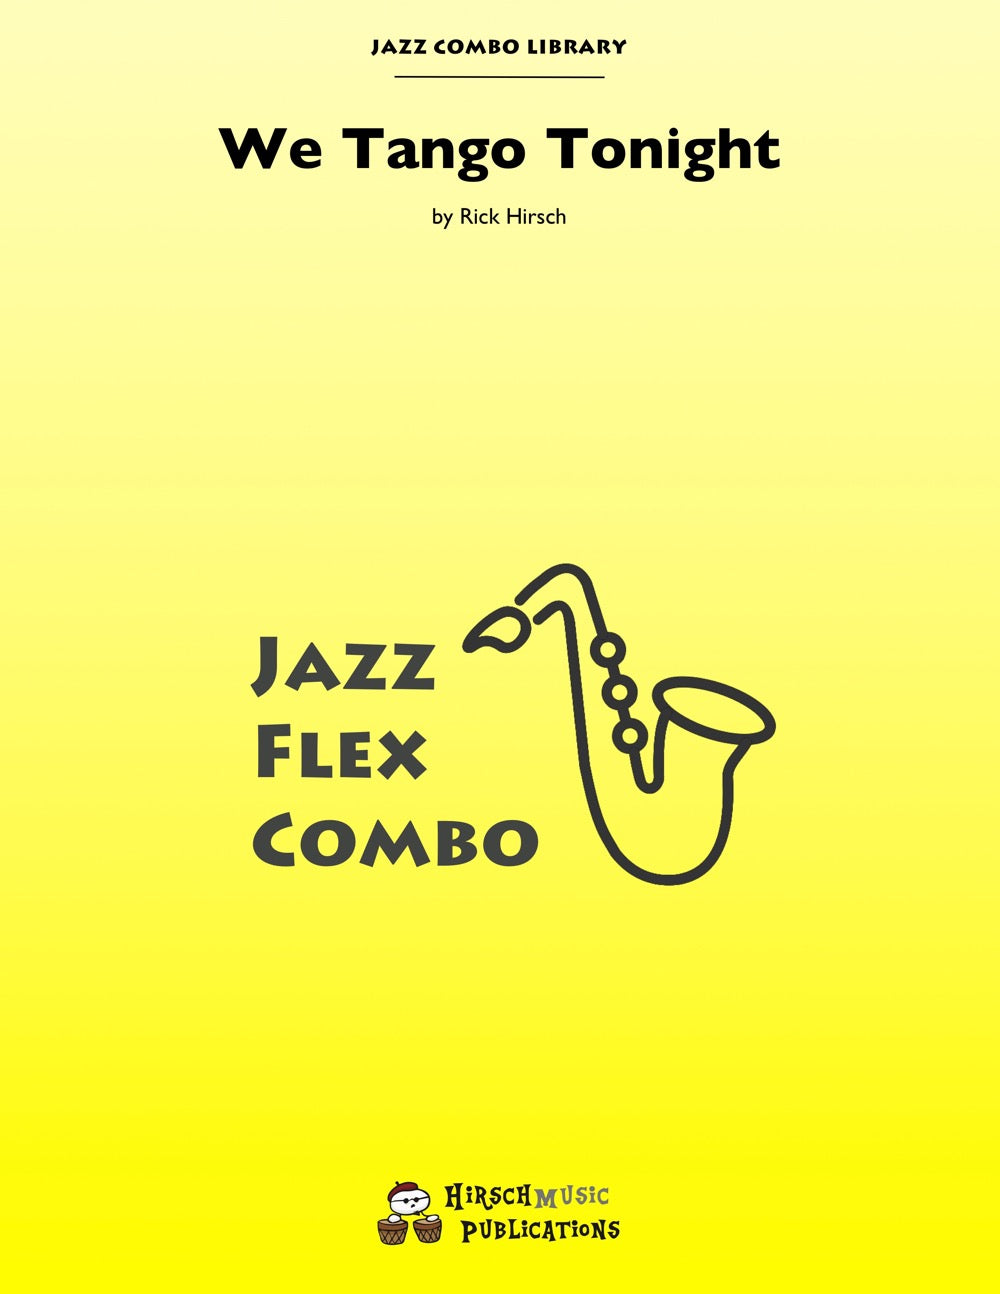 We Tango Tonight